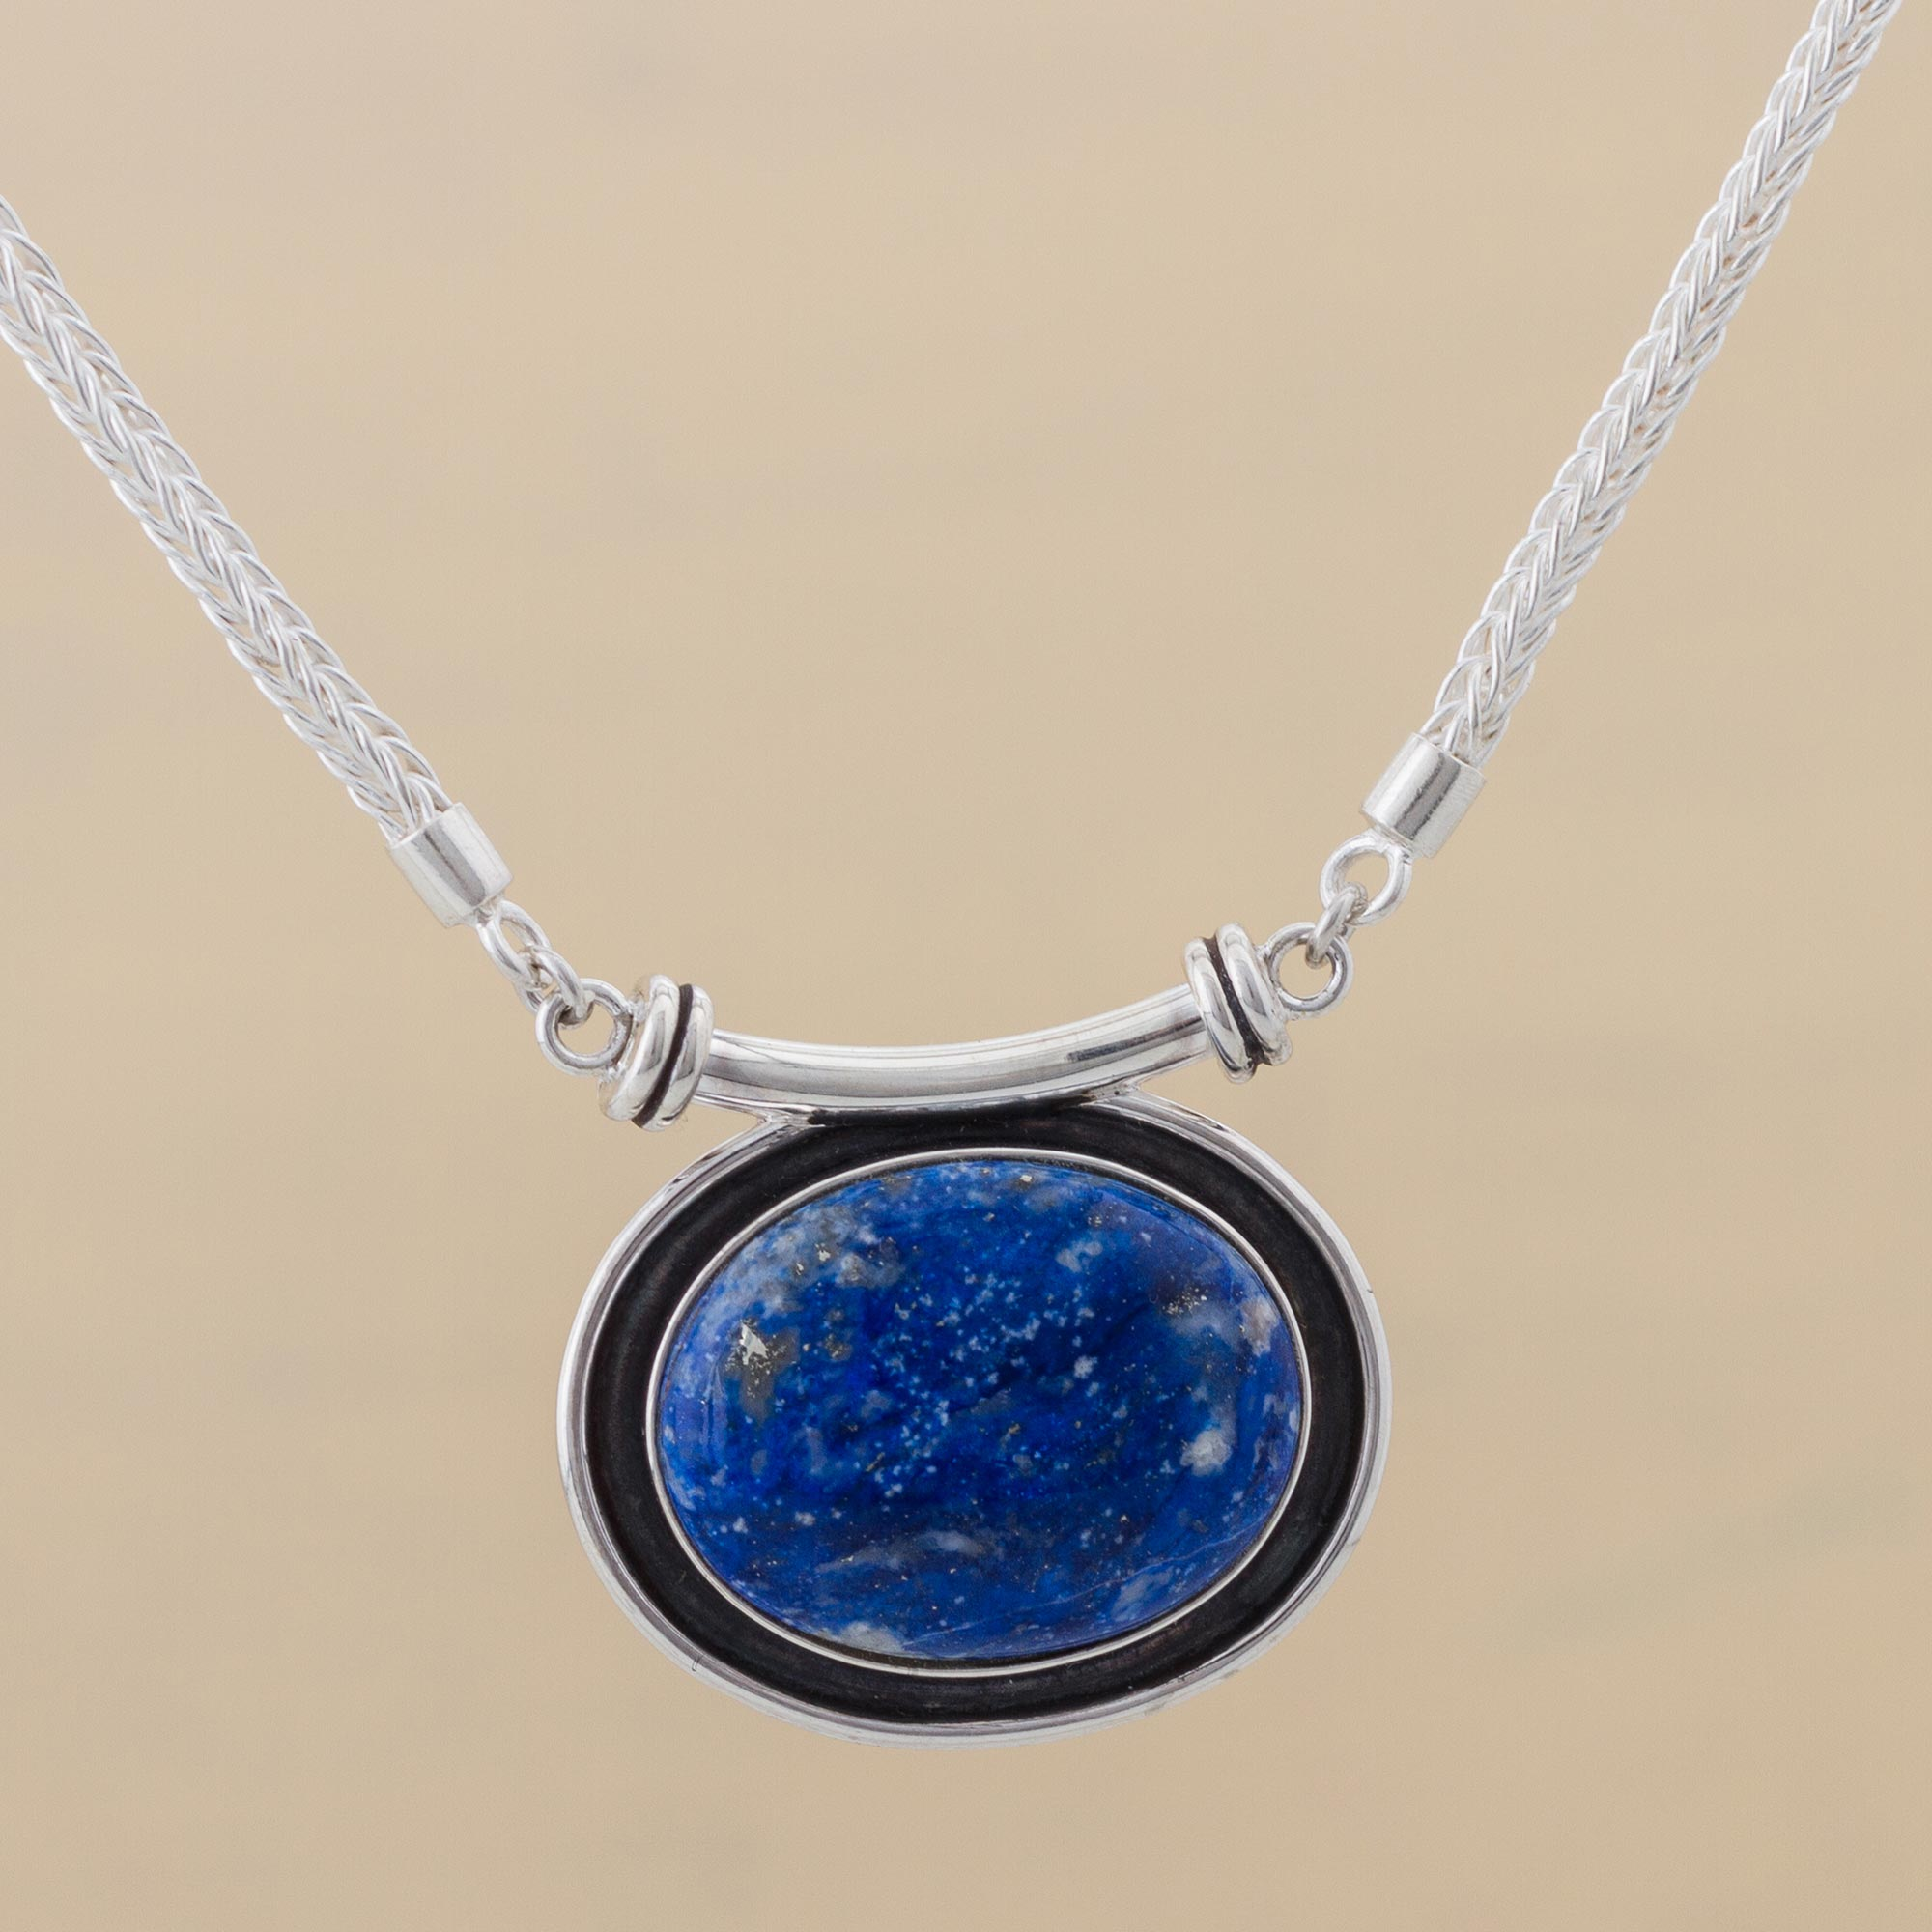 fine img products arts jewelry himalayan lapis pendant collections handmade large at mahakala